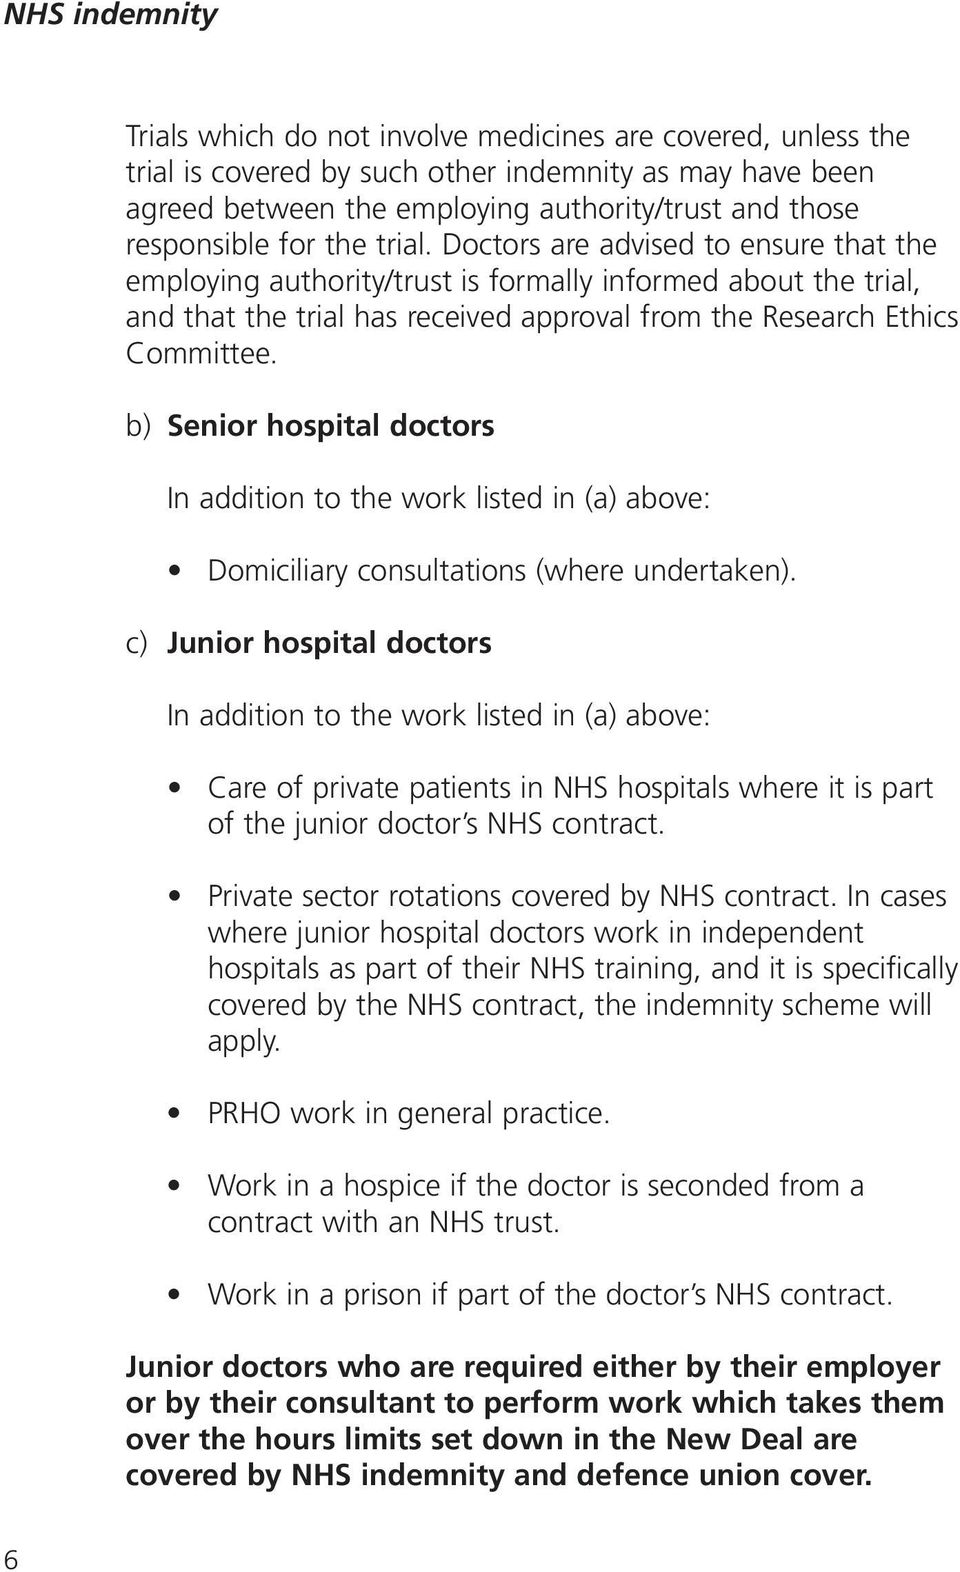 b) Senior hospital doctors In addition to the work listed in (a) above: Domiciliary consultations (where undertaken).